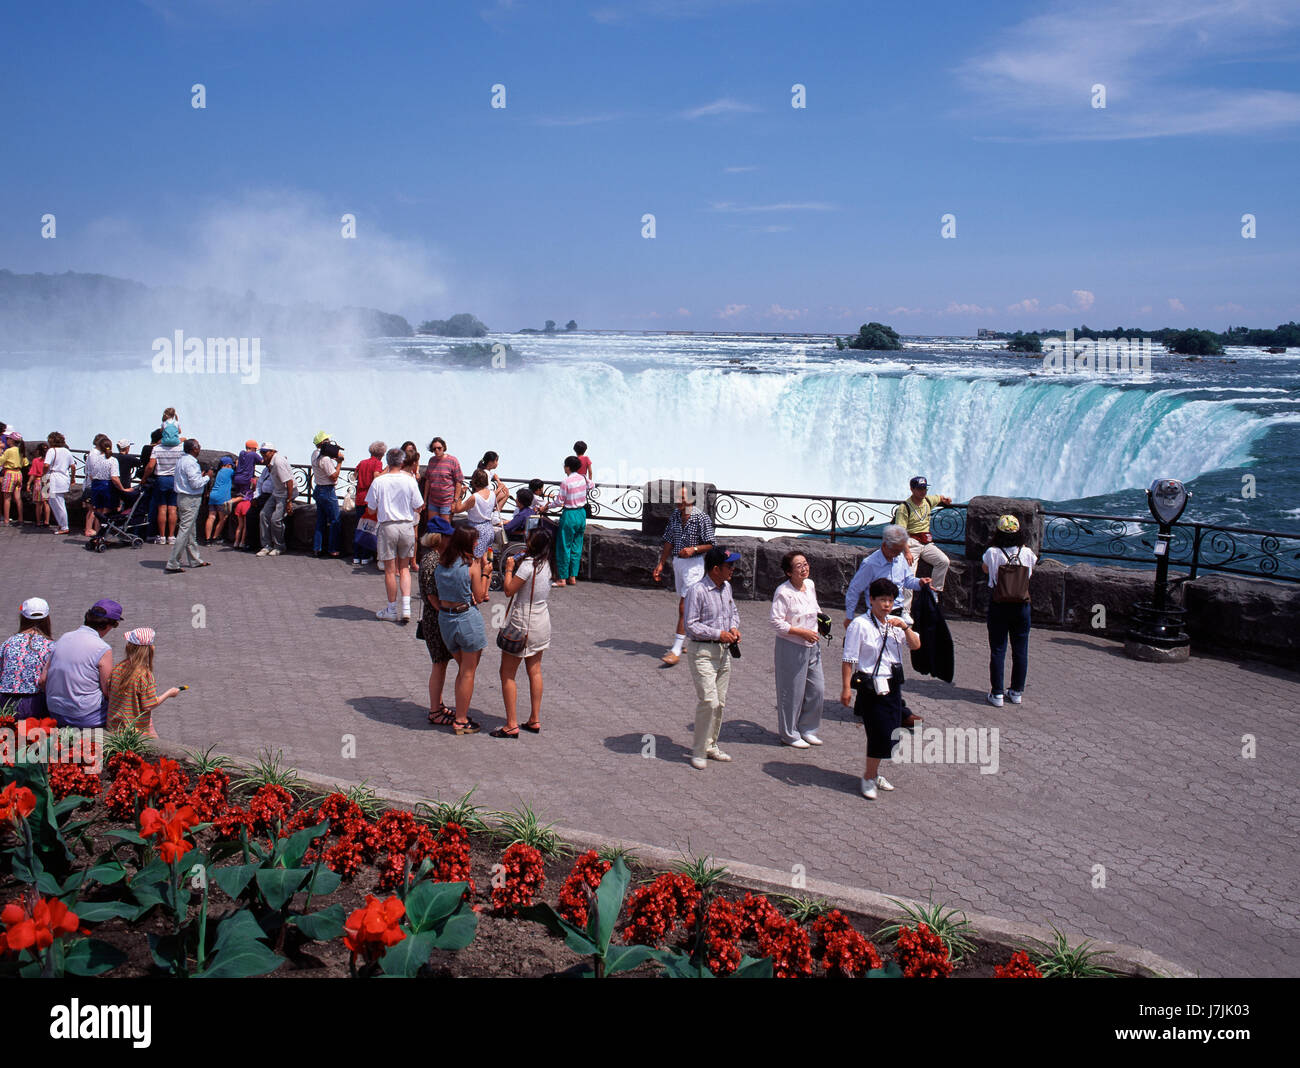 Tourists viewing Niagara Falls Ontario Canada - Stock Image